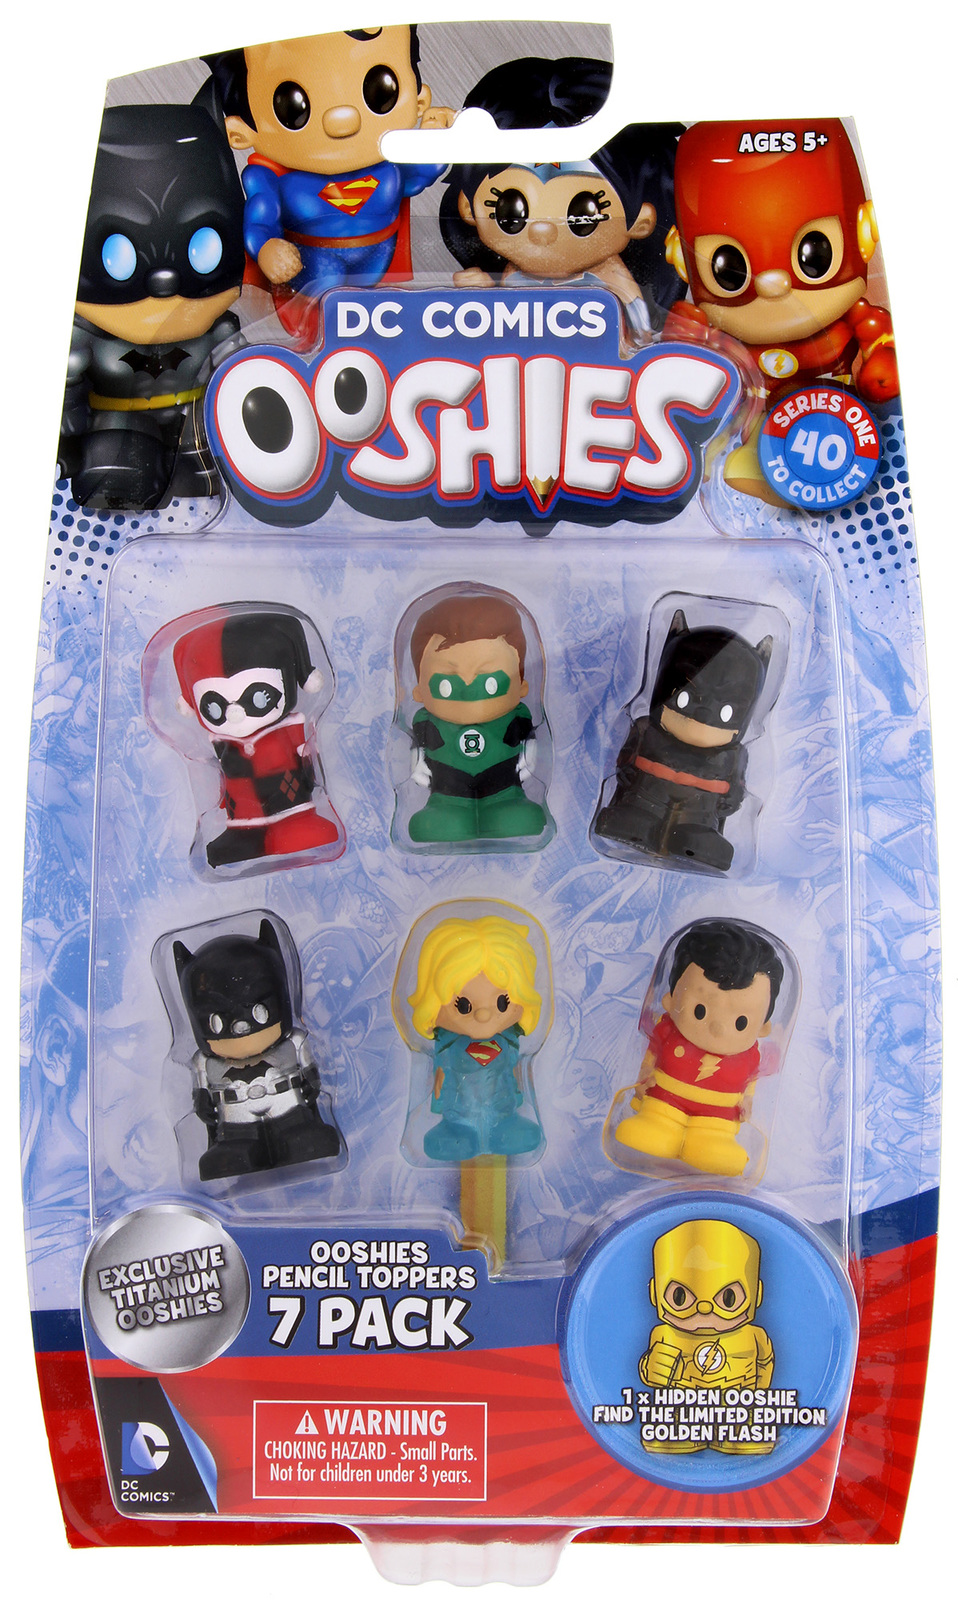 ooshies justice league 7 pack images at mighty ape nz. Black Bedroom Furniture Sets. Home Design Ideas